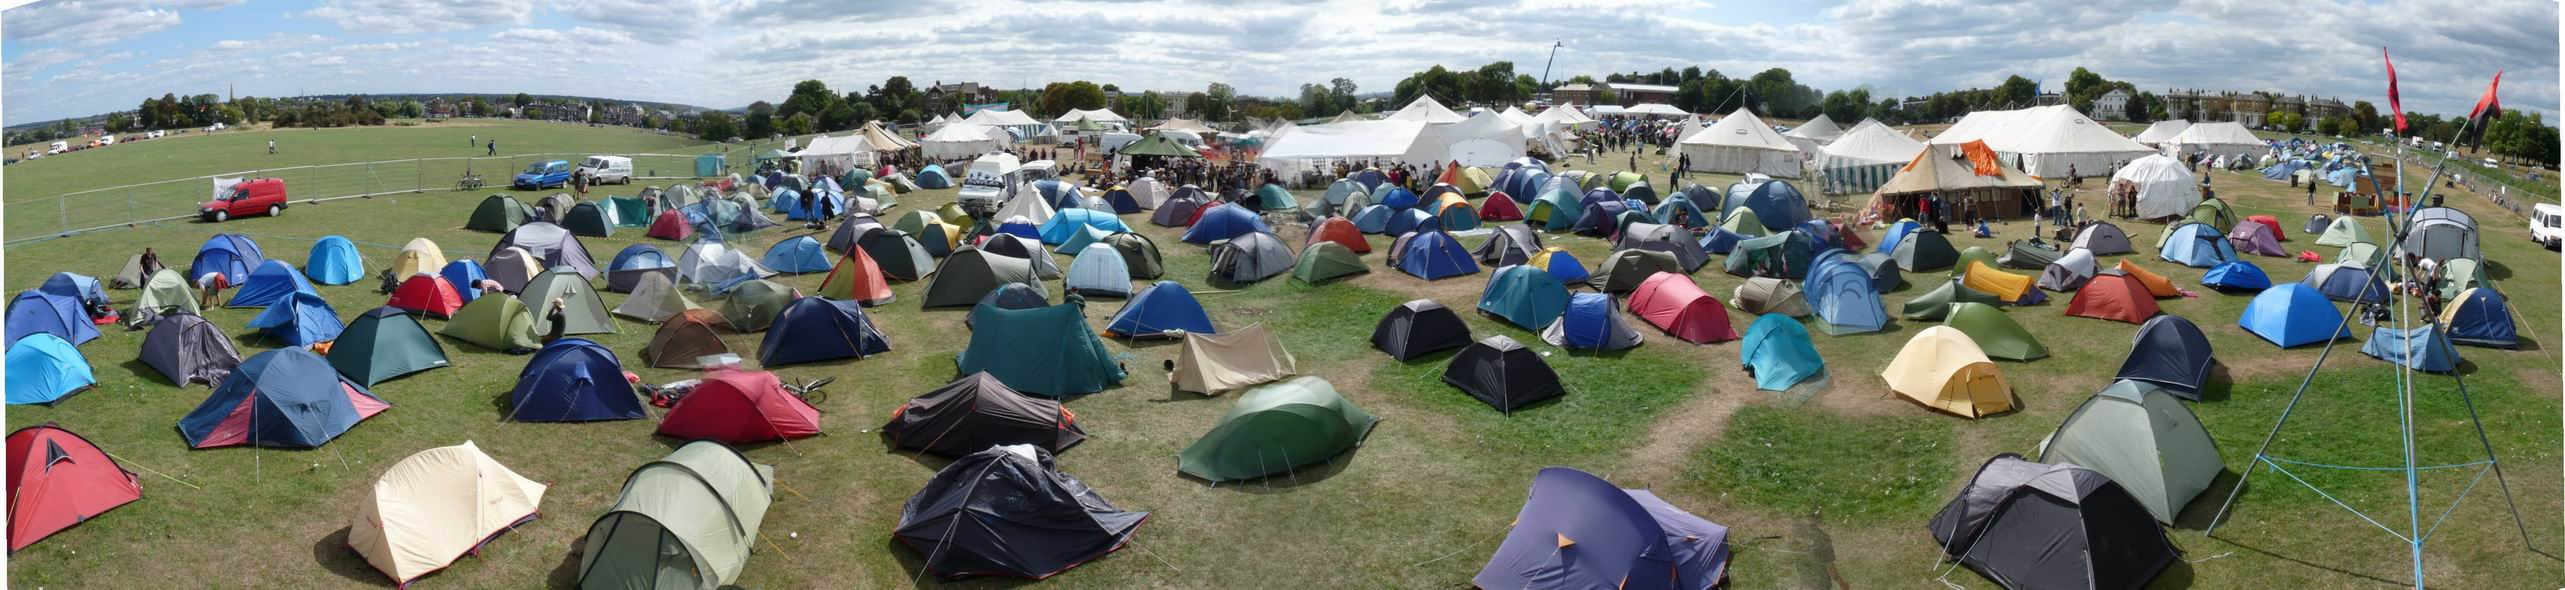 During the Blackheath Climate Camp, photo by Indymedia